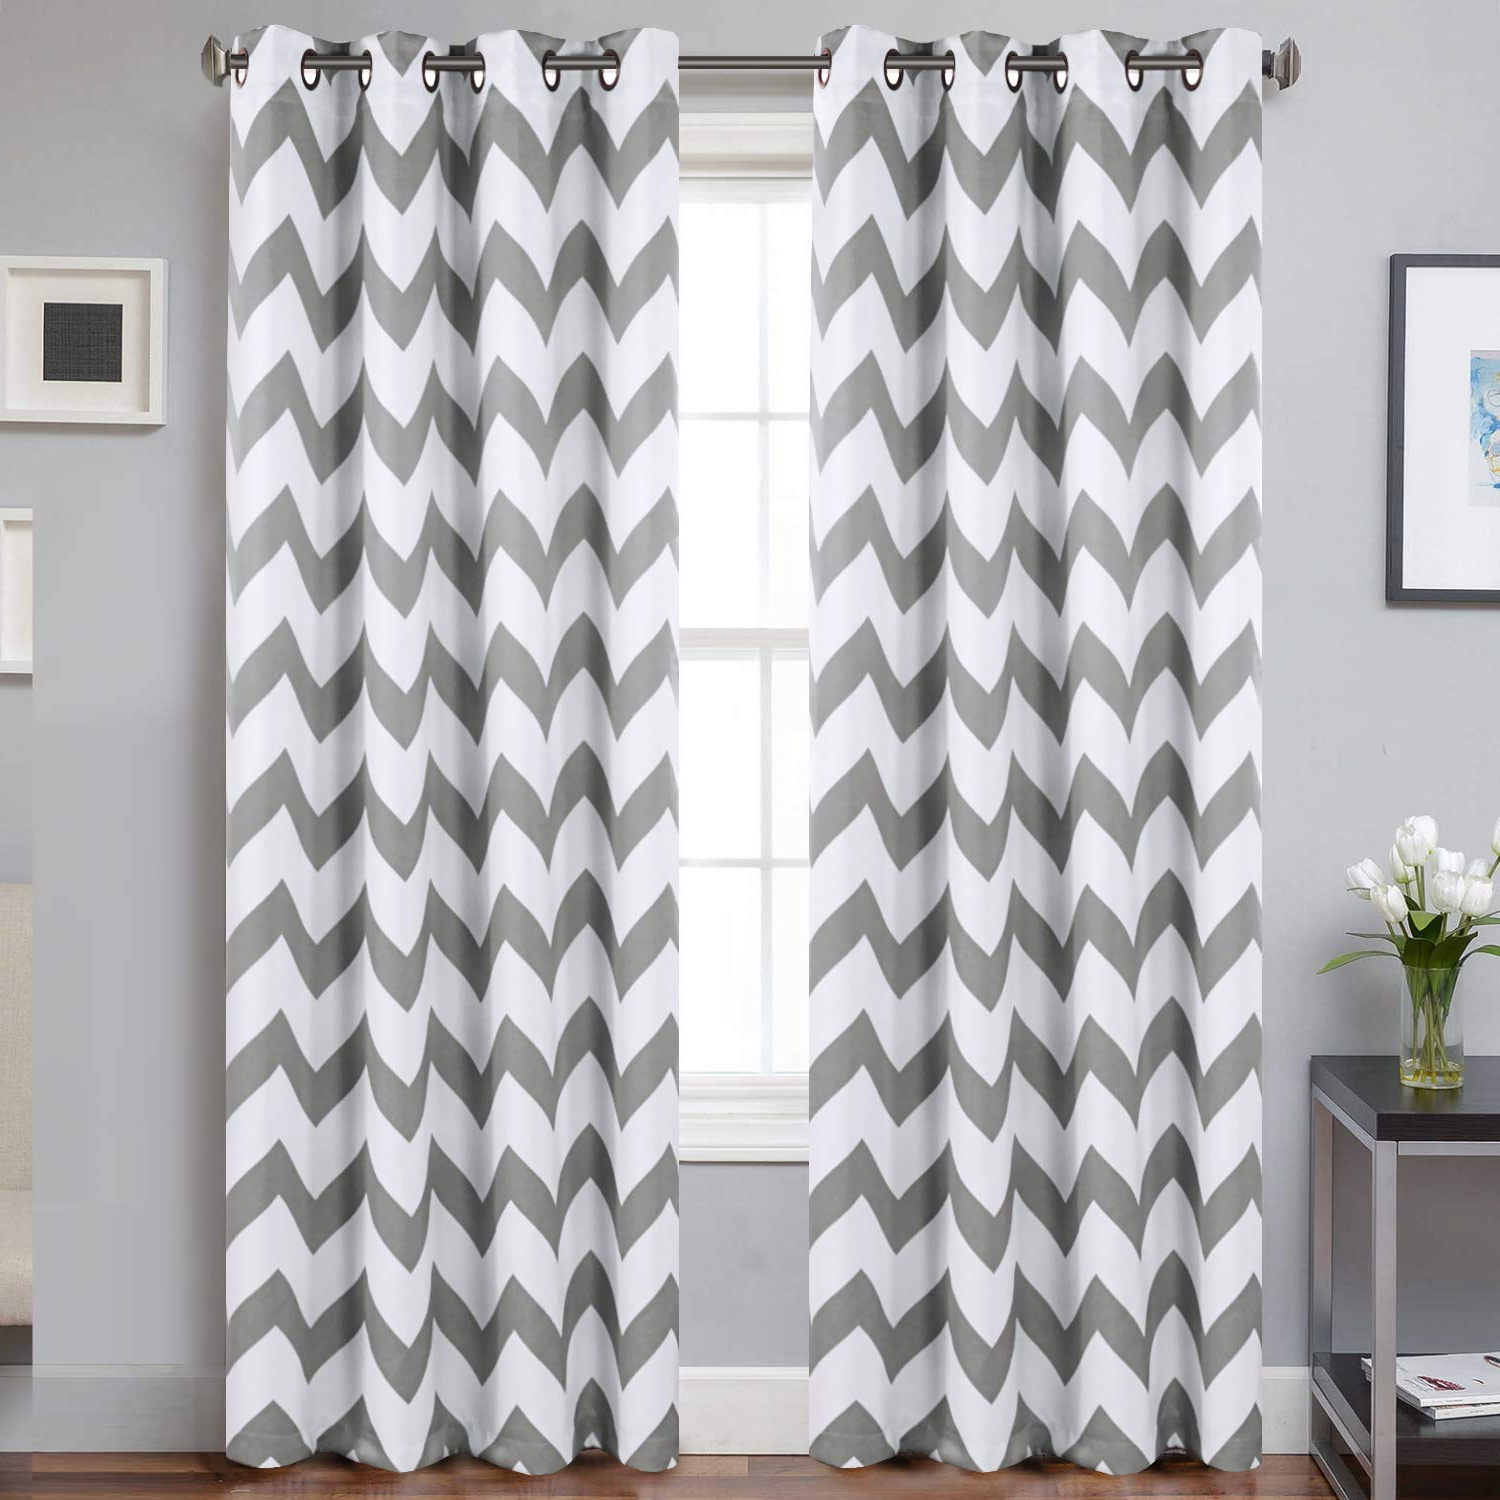 Chevron Blackout Grommet Curtain Panels Throughout Fashionable Chevron Blackout Curtains Dove Polyline Microfiber Thermal Insulated Grommet Room Darkening Drapes For Indoors Window Treatments Drapes For Bedroom ( (View 2 of 20)